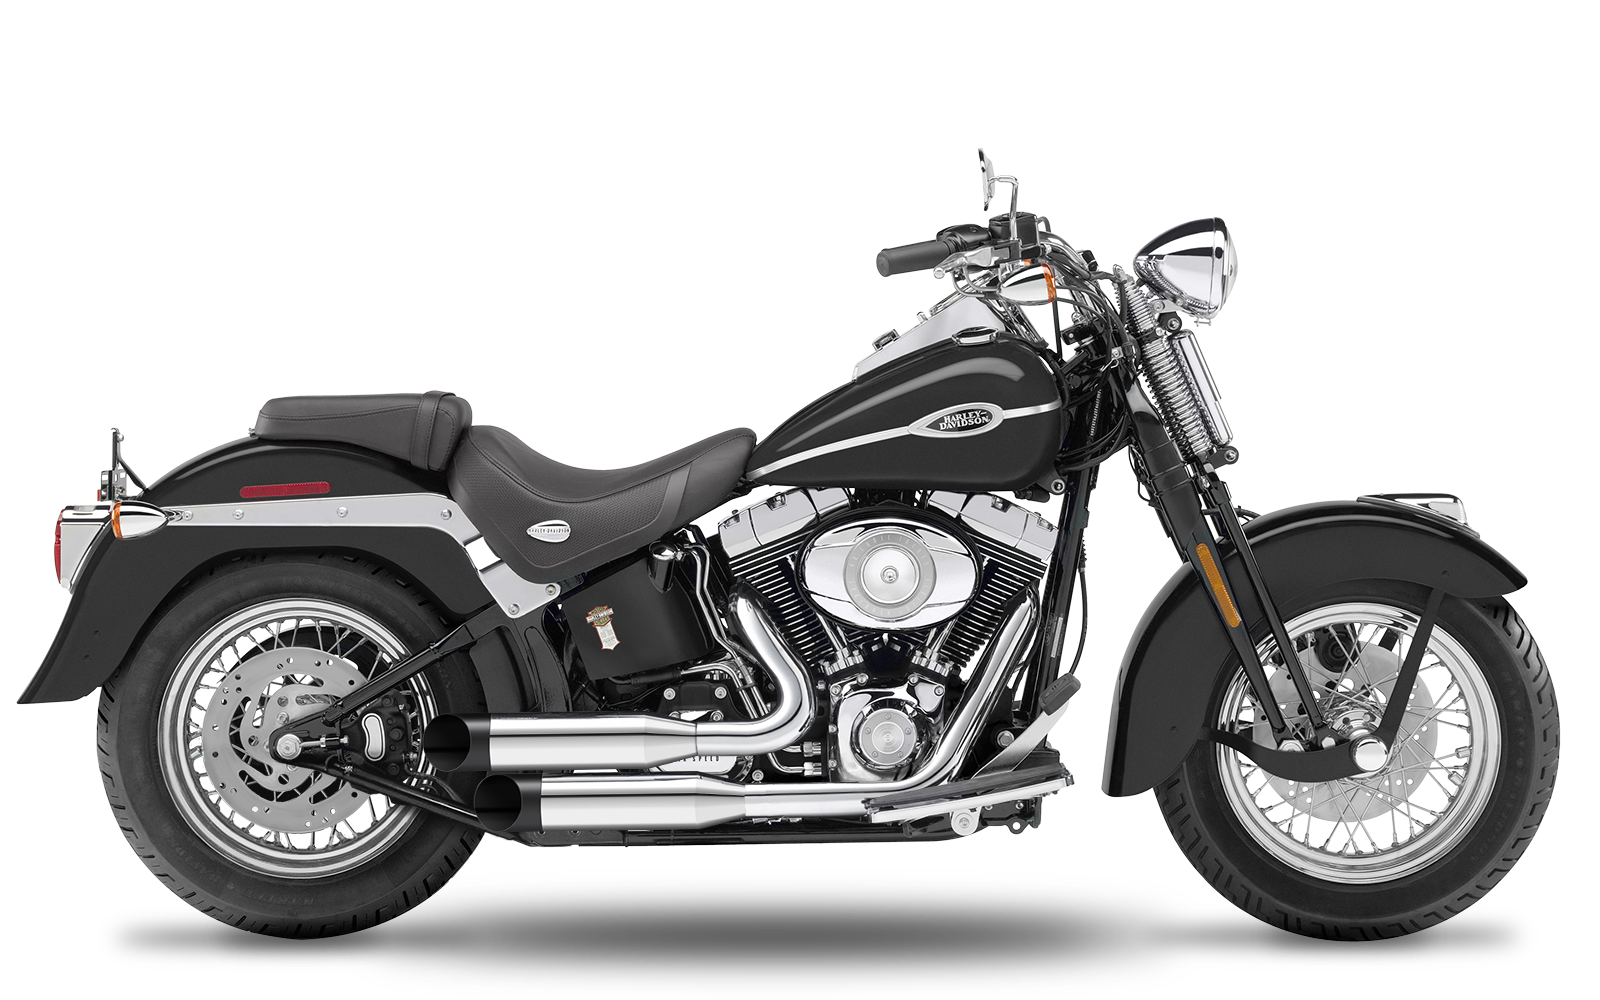 Softail - Springer Classic - TC96 - 2007-2011 - Complete systems adjustable